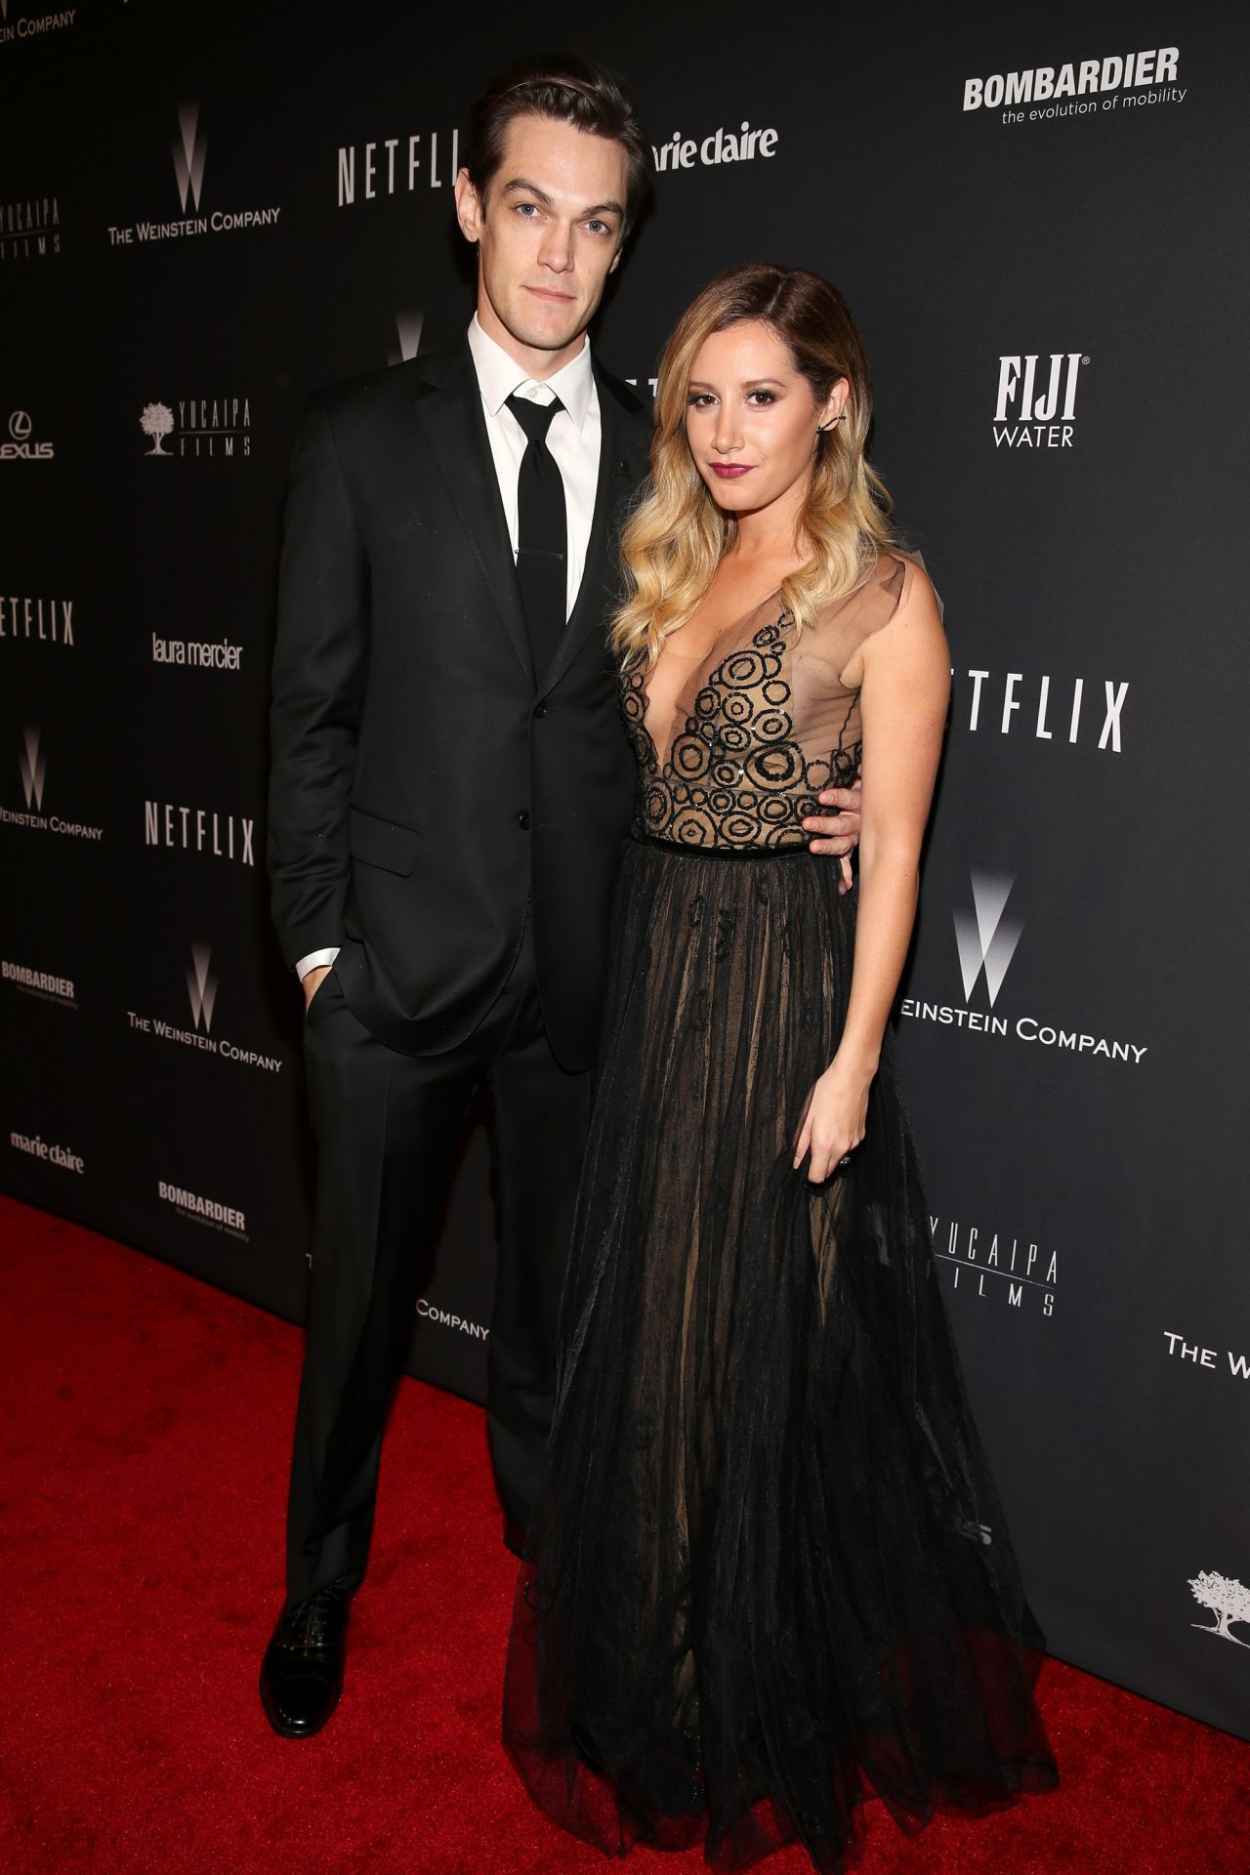 Ashley Tisdale at The Weinstein Company & Netflix 2015 Golden Globe Afterparty-1